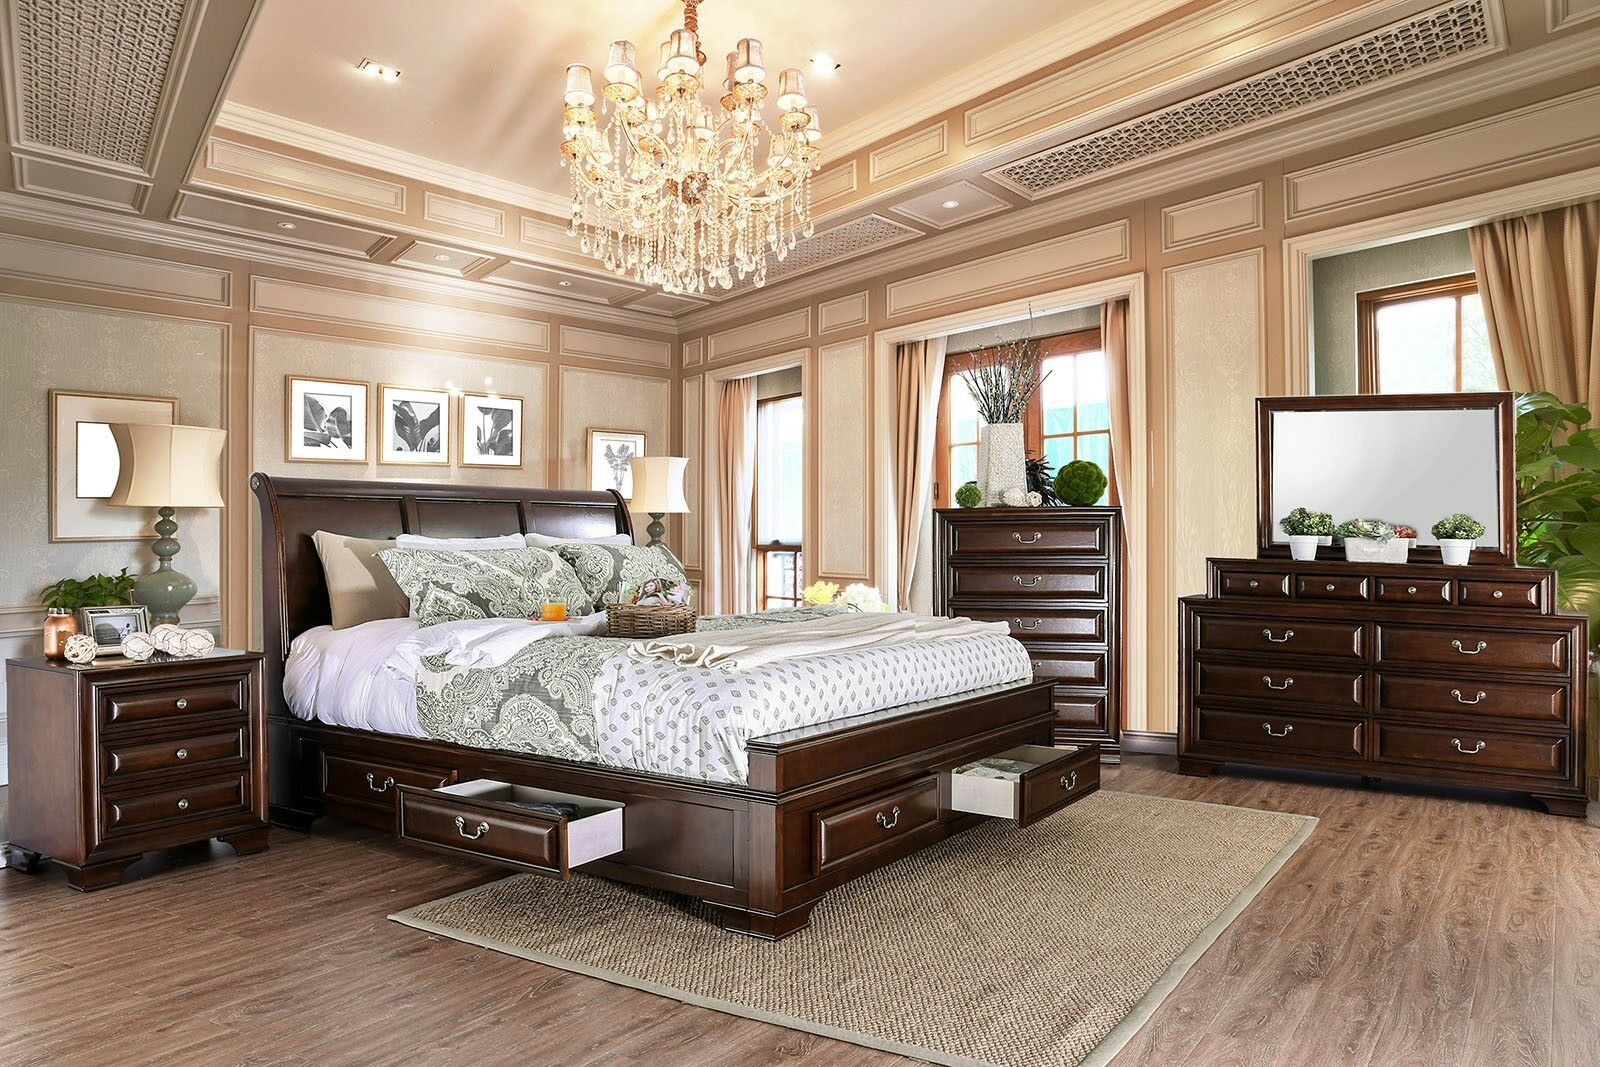 Bedroom Furniture Sleigh Cal King Bed Dresser Mirror Nightstand 4pc Set Brown